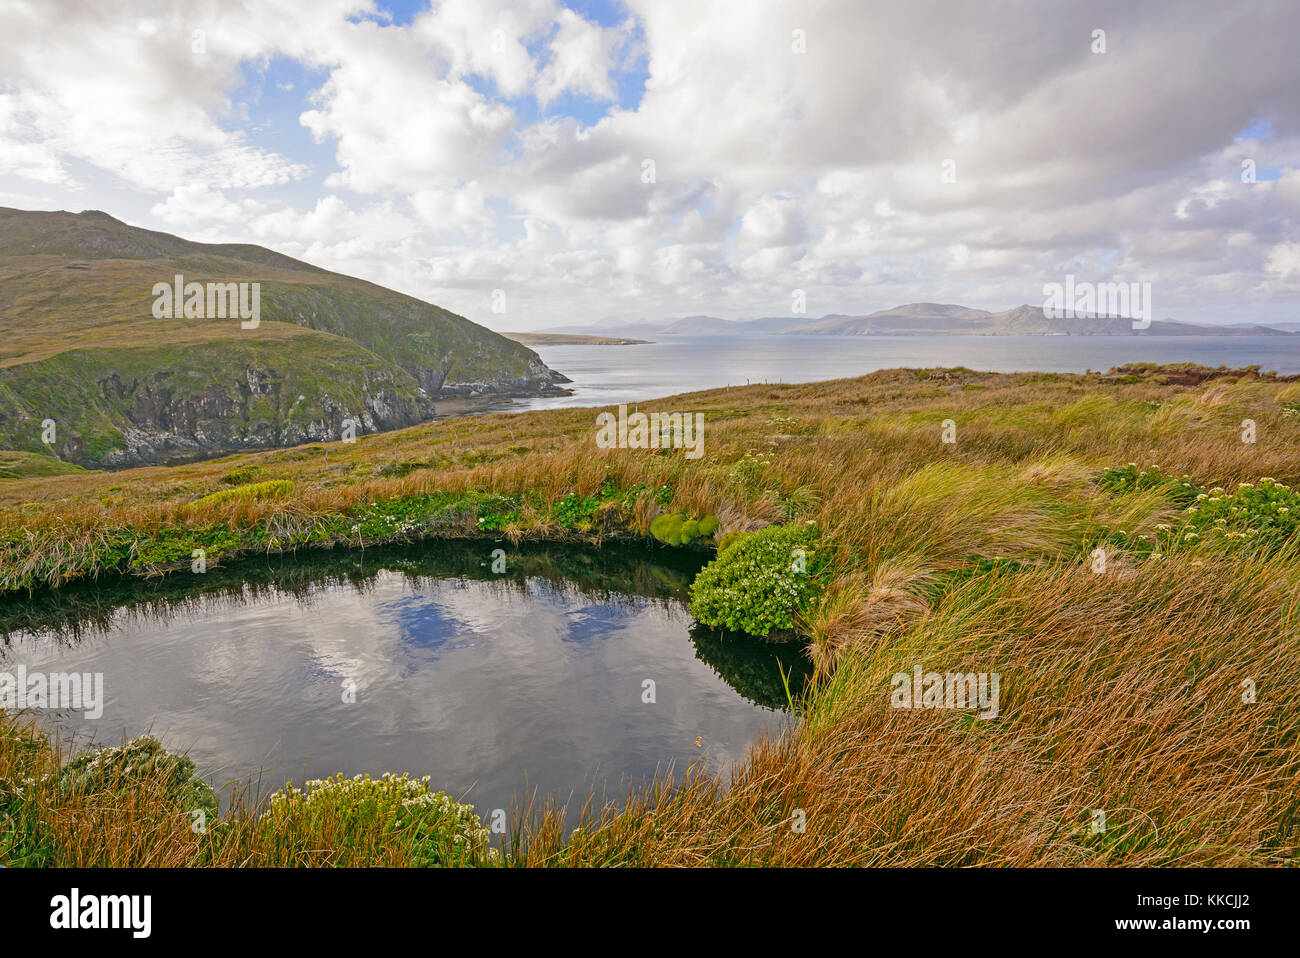 Colorful Landscape on Cape Horn Island in Tierrra del Fuego, Chile - Stock Image